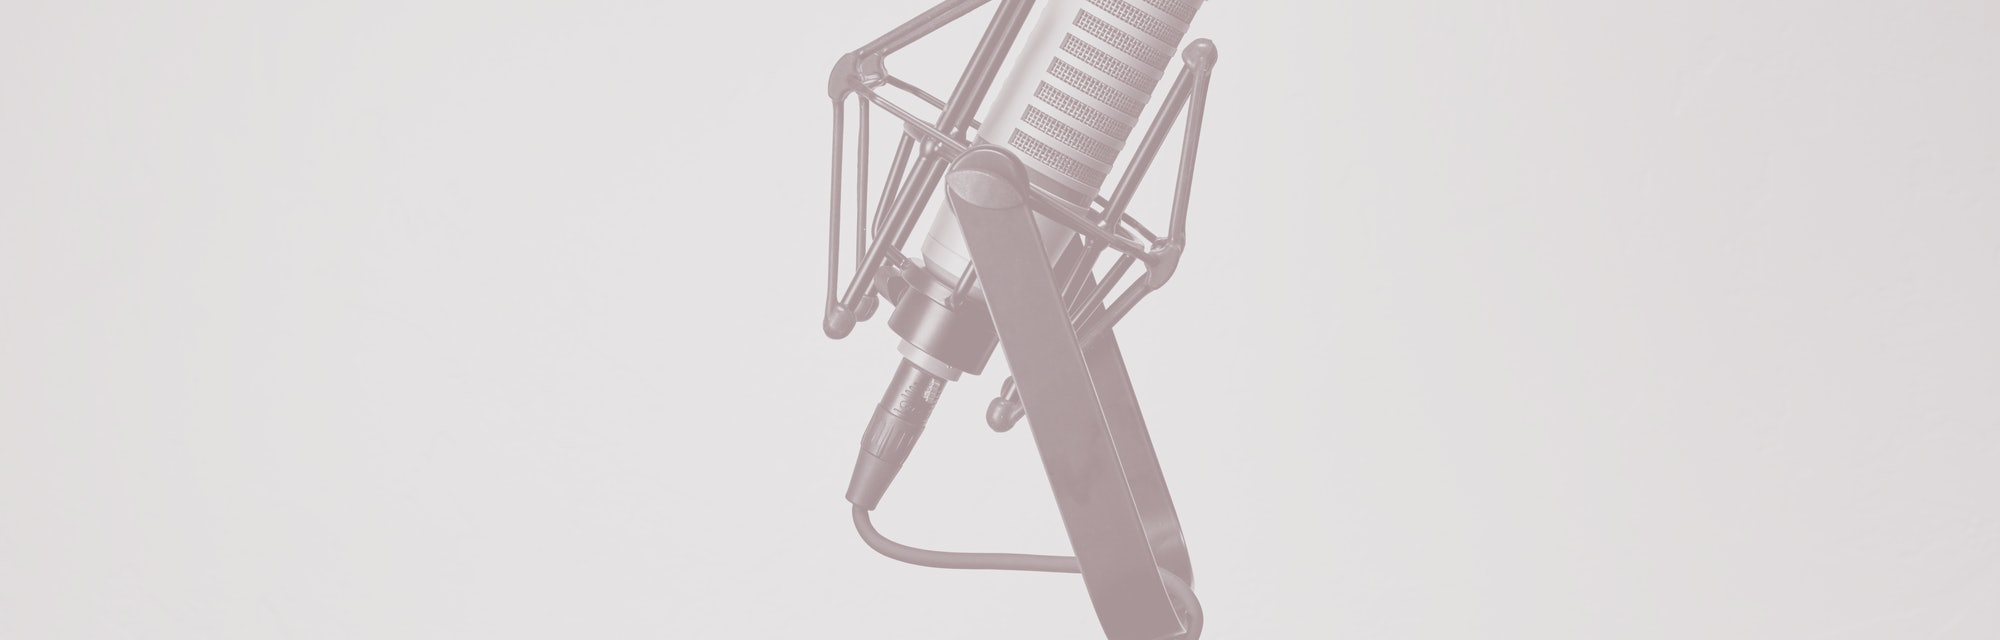 Recording a podcast or audiobook? Hop into the audio booth and start recording with this high-end mi...